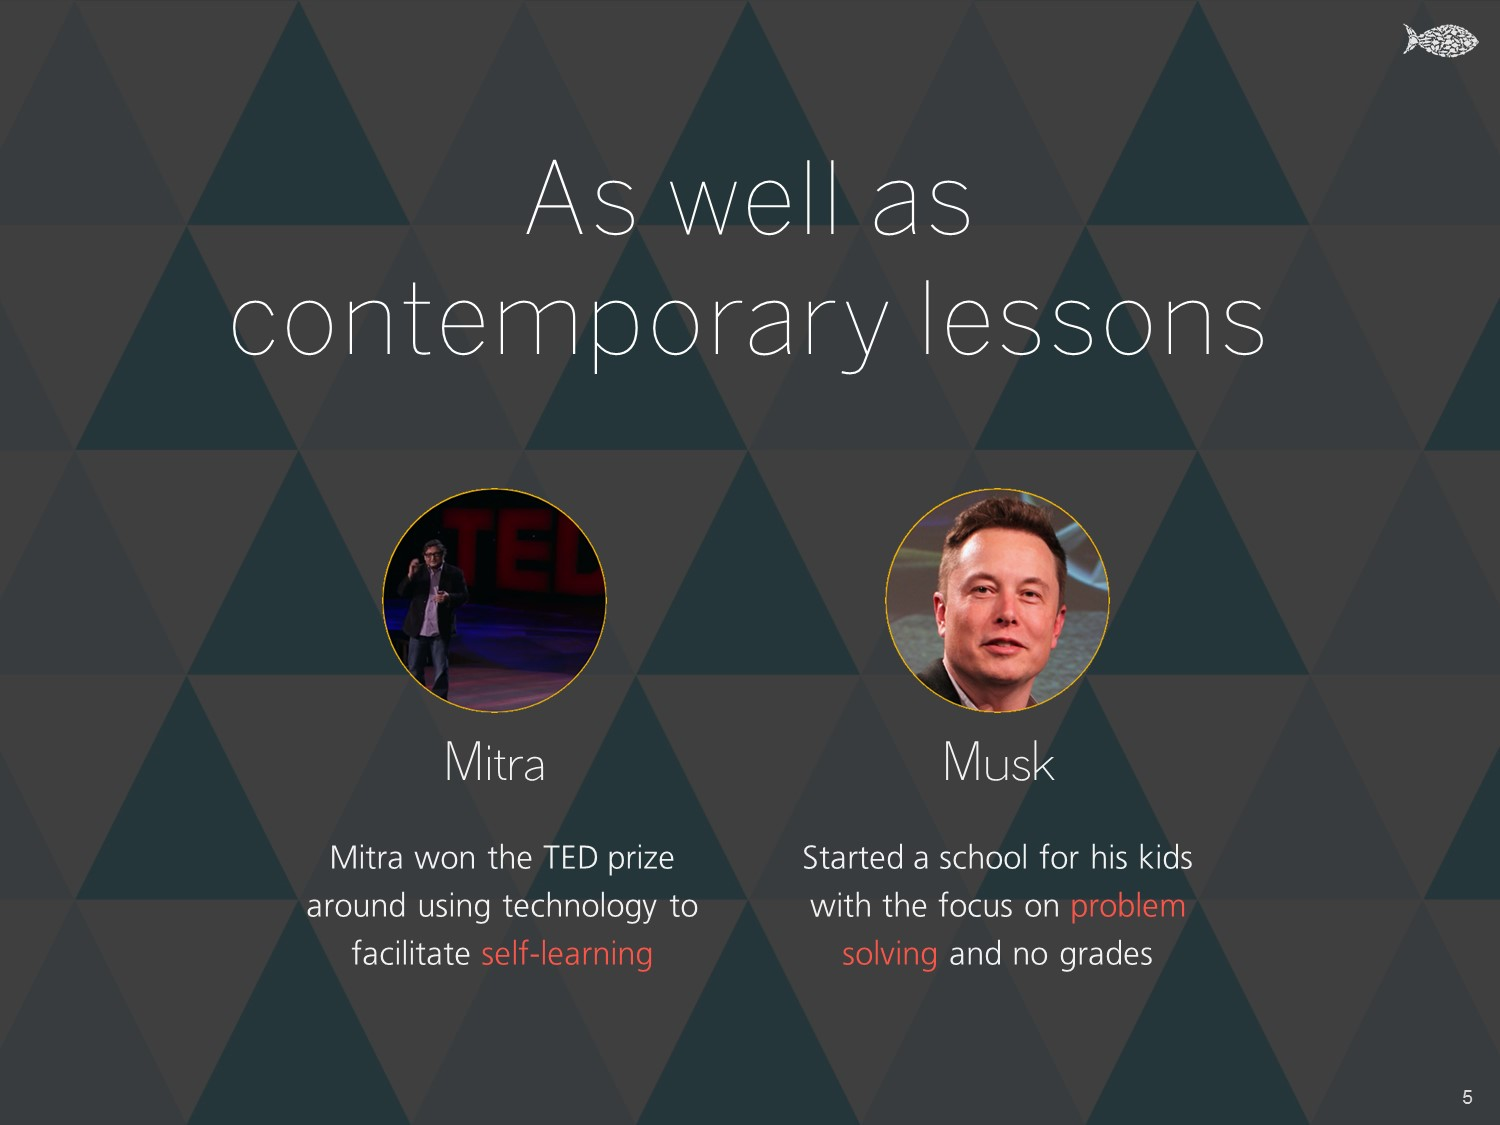 As well as contemporary lessons - Khud EdTech Pakistan